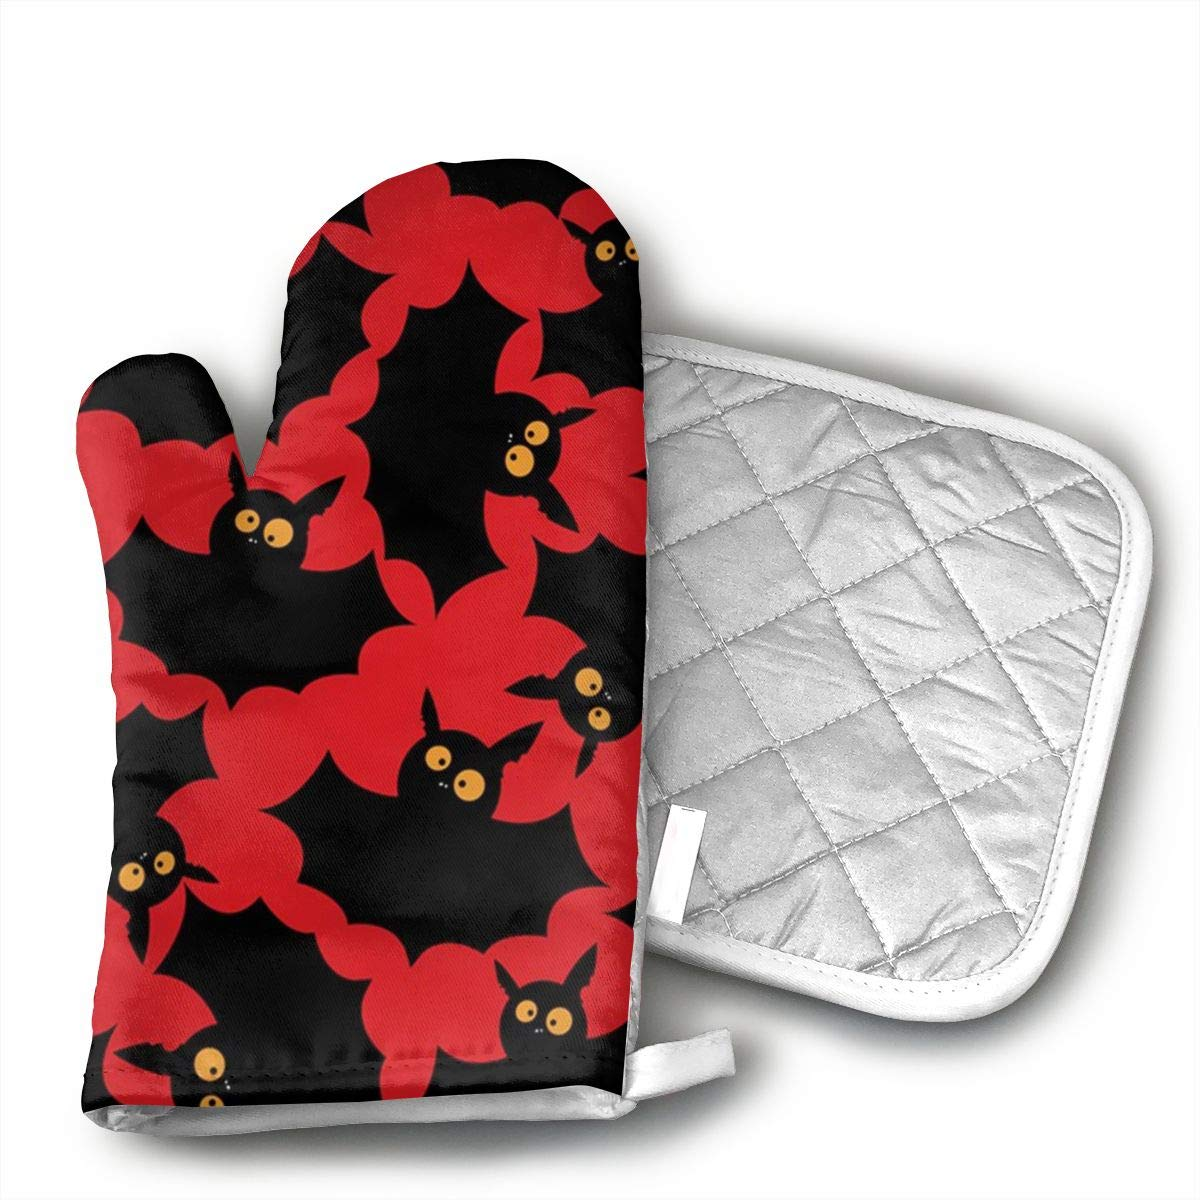 Wiqo9 Halloween Bats Oven Mitts and Pot Holders Kitchen Mitten Cooking Gloves,Cooking, Baking, BBQ.